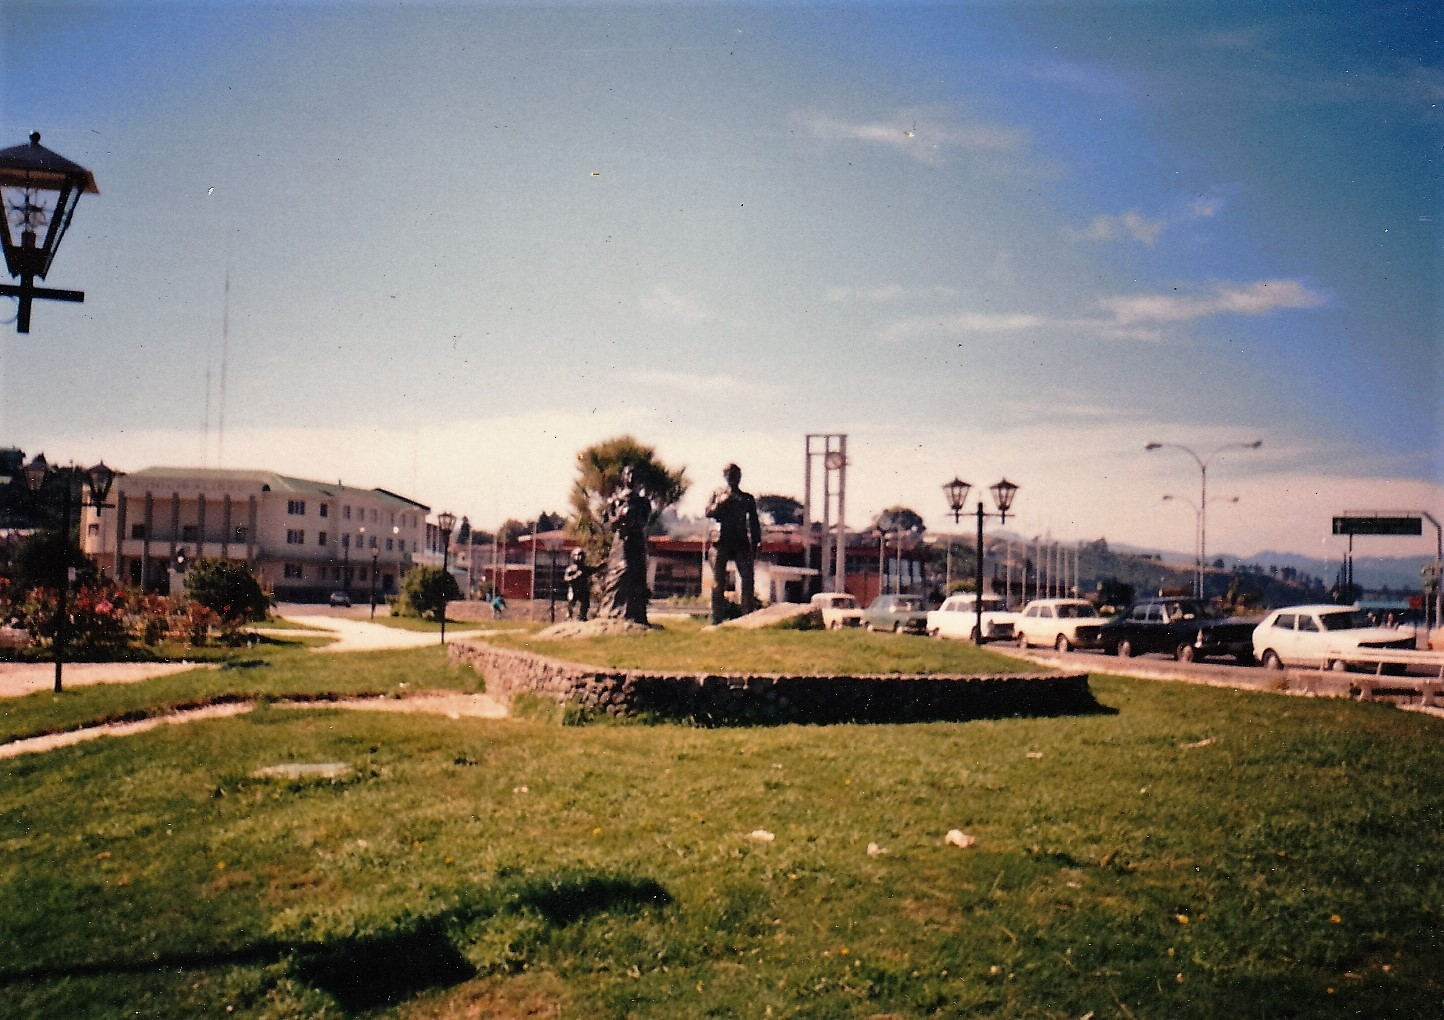 Enterreno - Fotos históricas de chile - fotos antiguas de Chile - Plaza de Armas de Puerto Montt en 1990